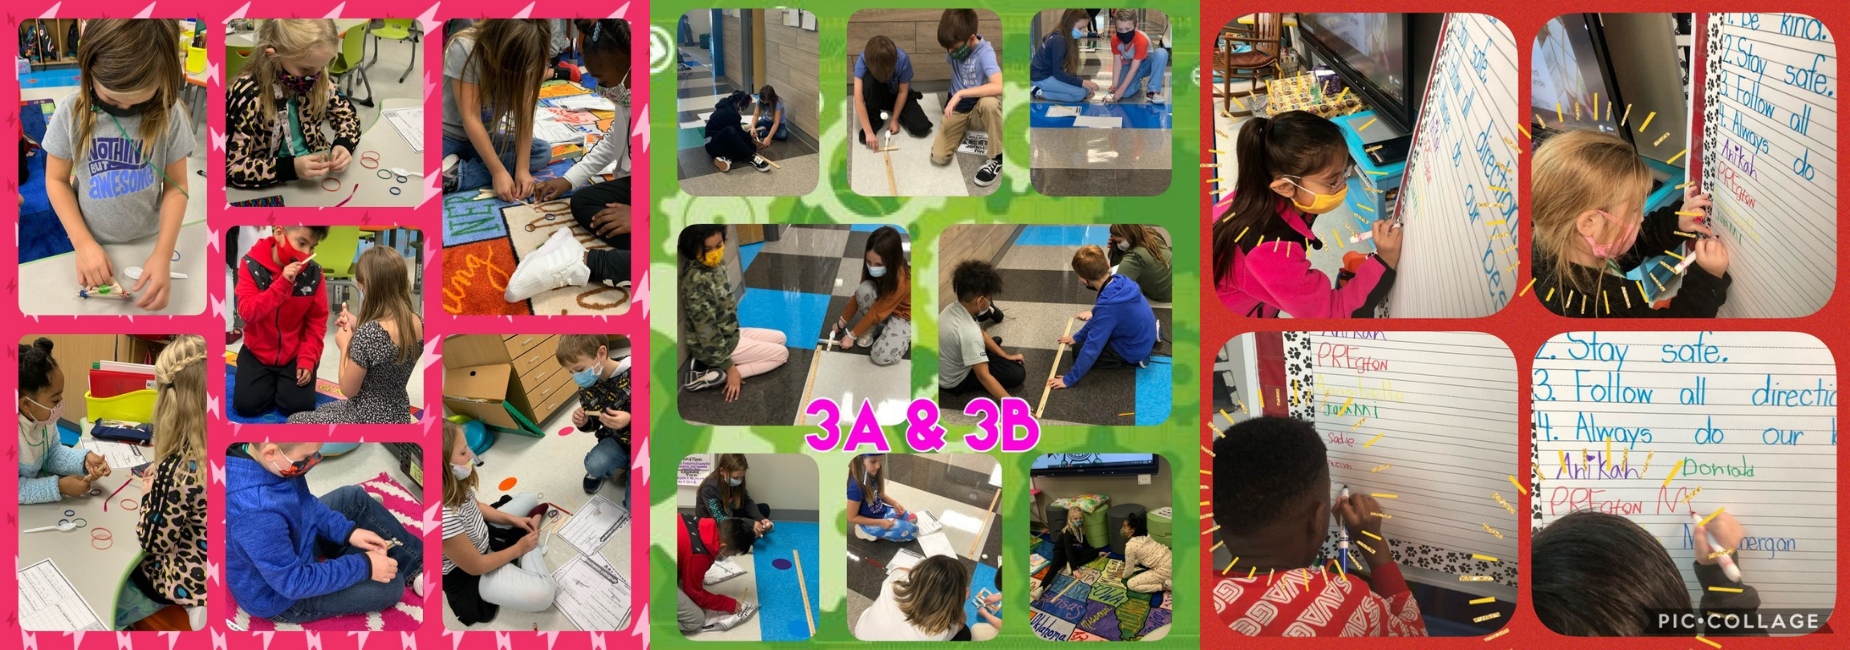 collage of students busy working in class